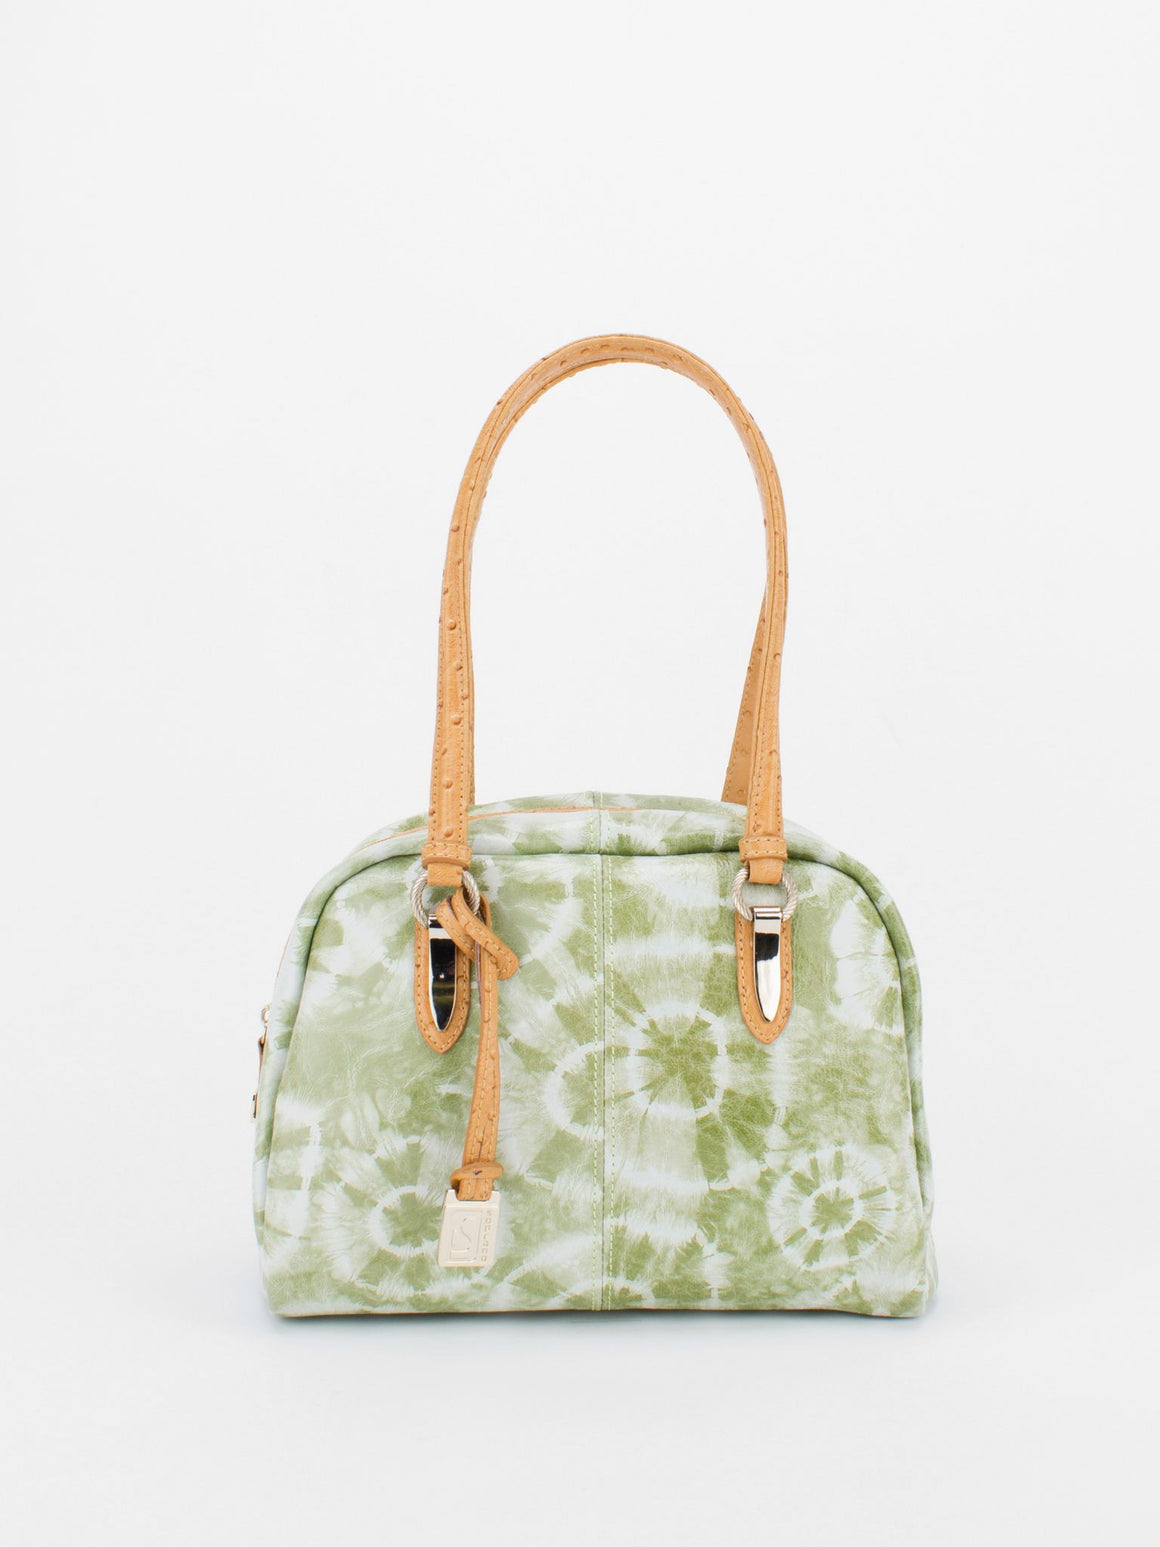 TRACY Tie-Dye Bowler with Ostrich Embossed Trim - Green